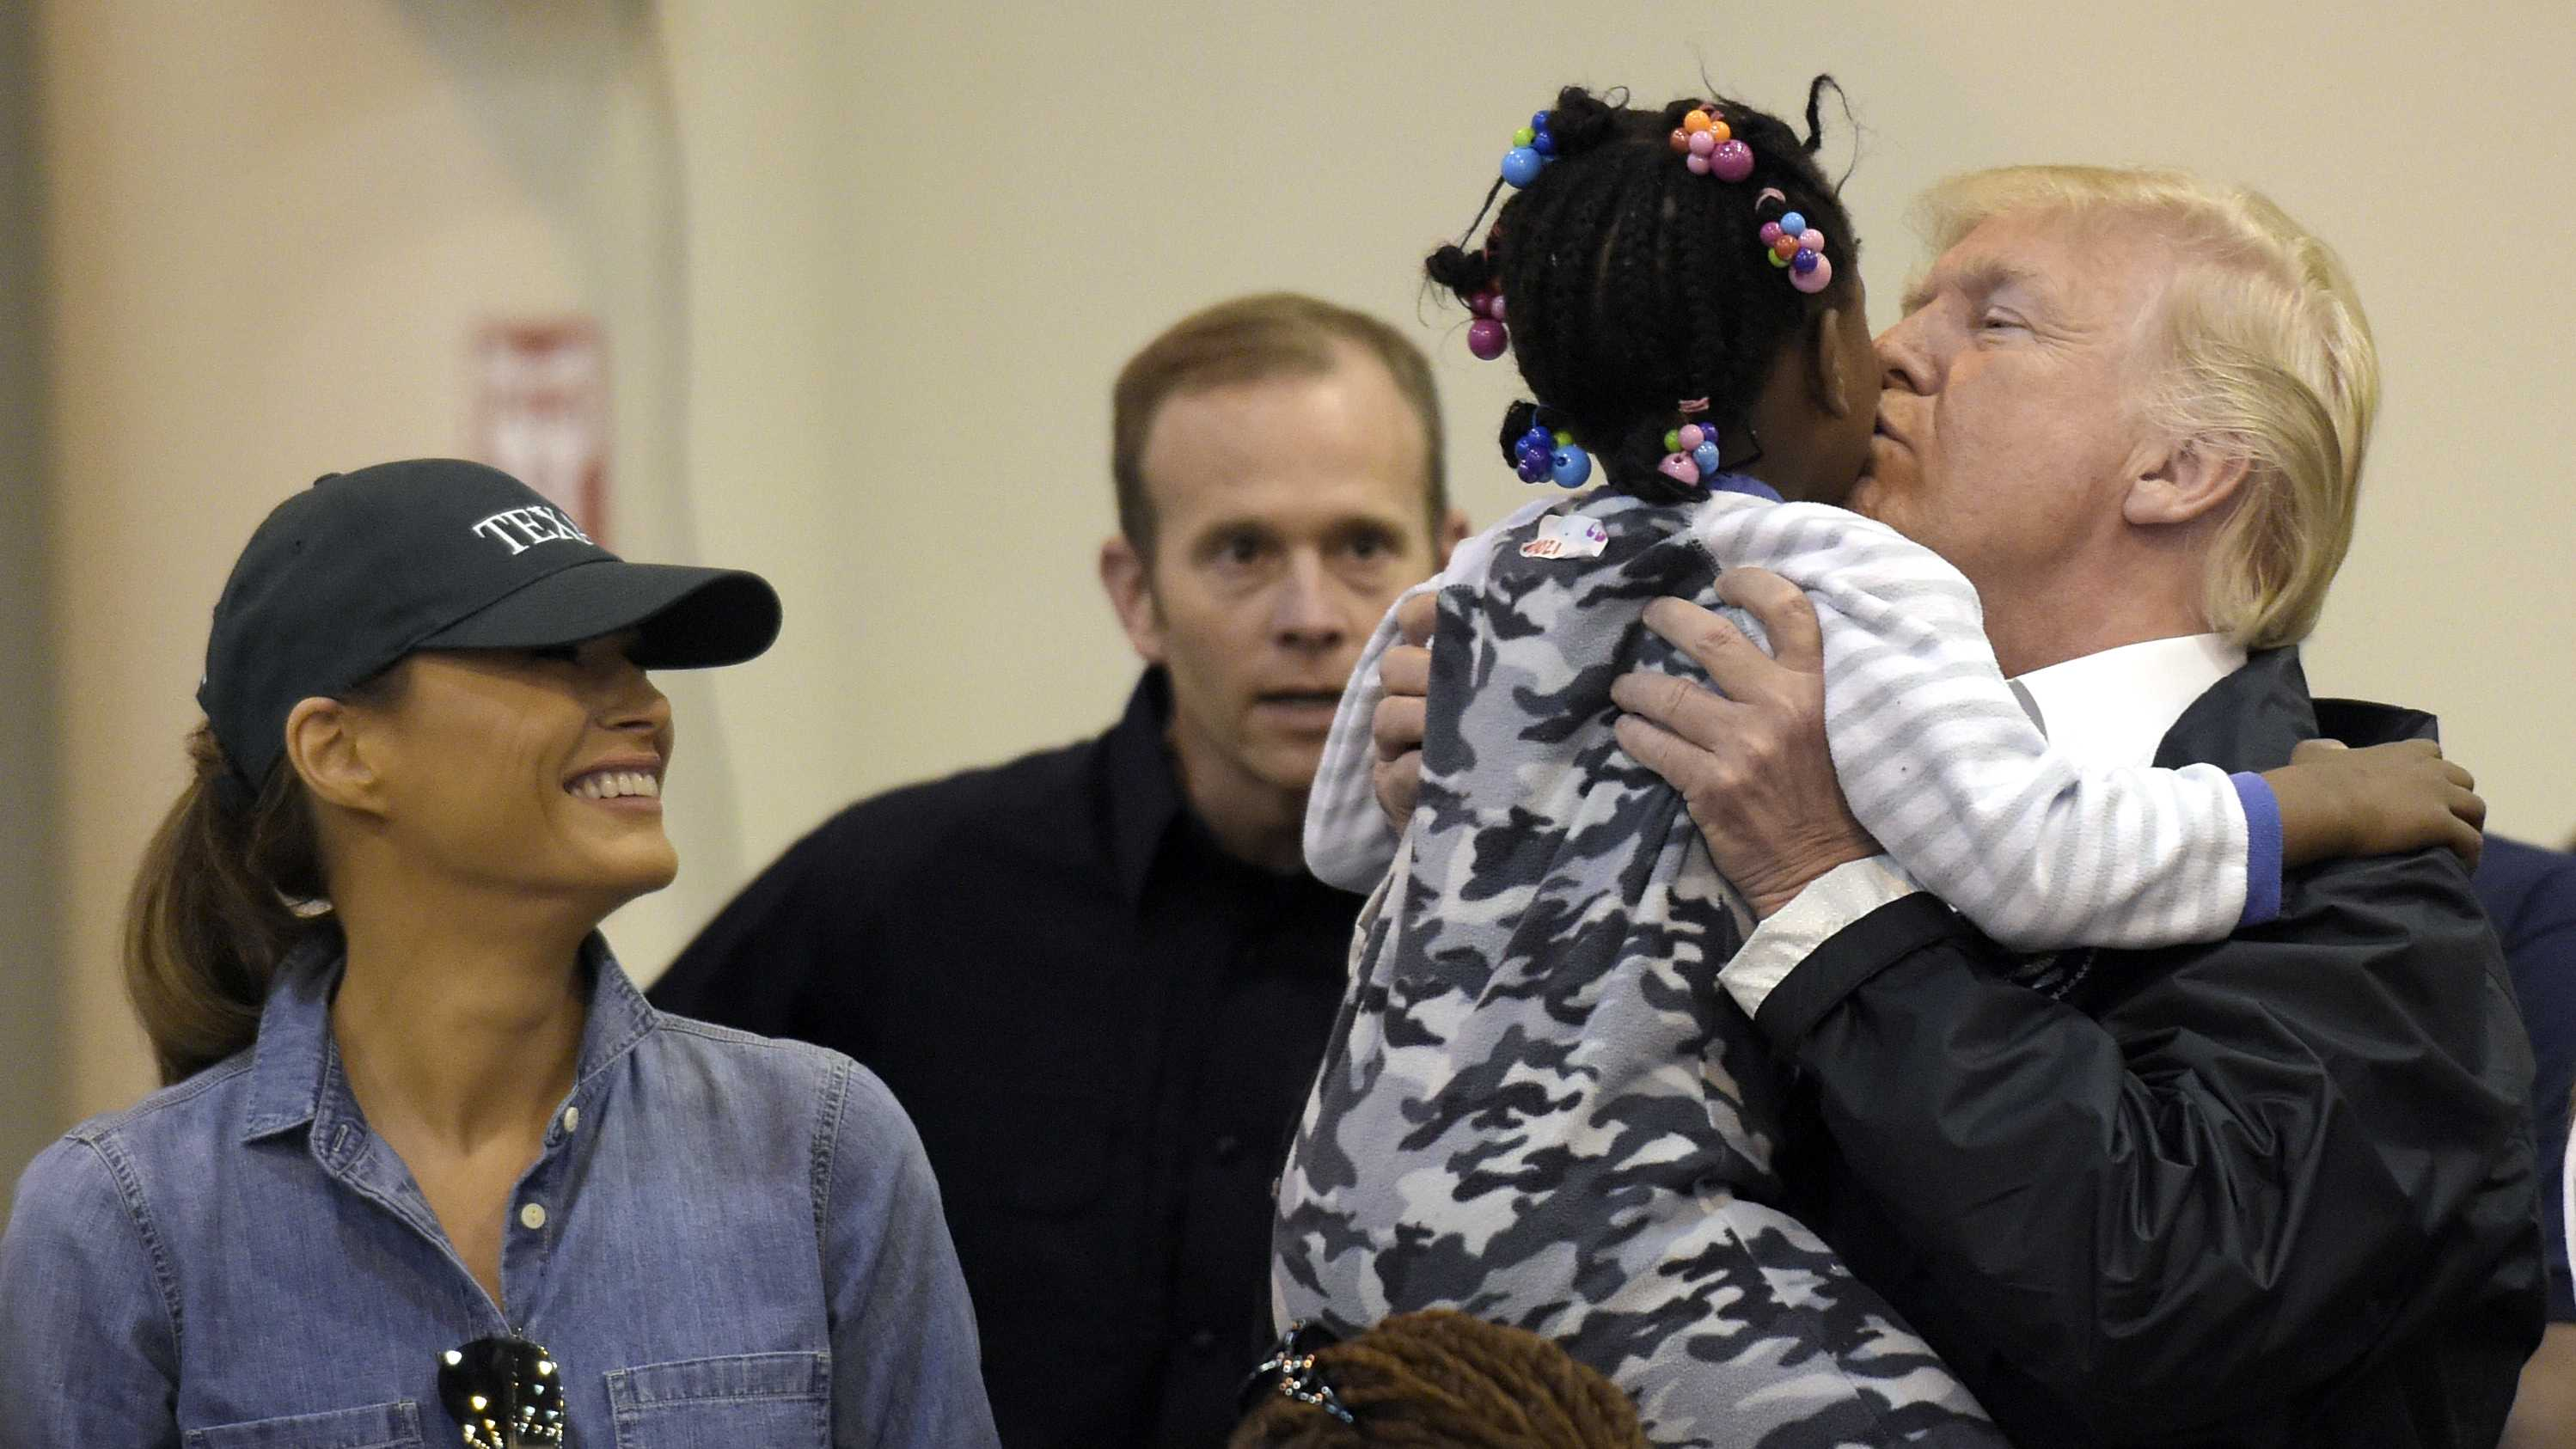 President Donald Trump and Melania Trump meet people impacted by Hurricane Harvey during a visit to the NRG Center in Houston, Saturday, Sept. 2, 2017.